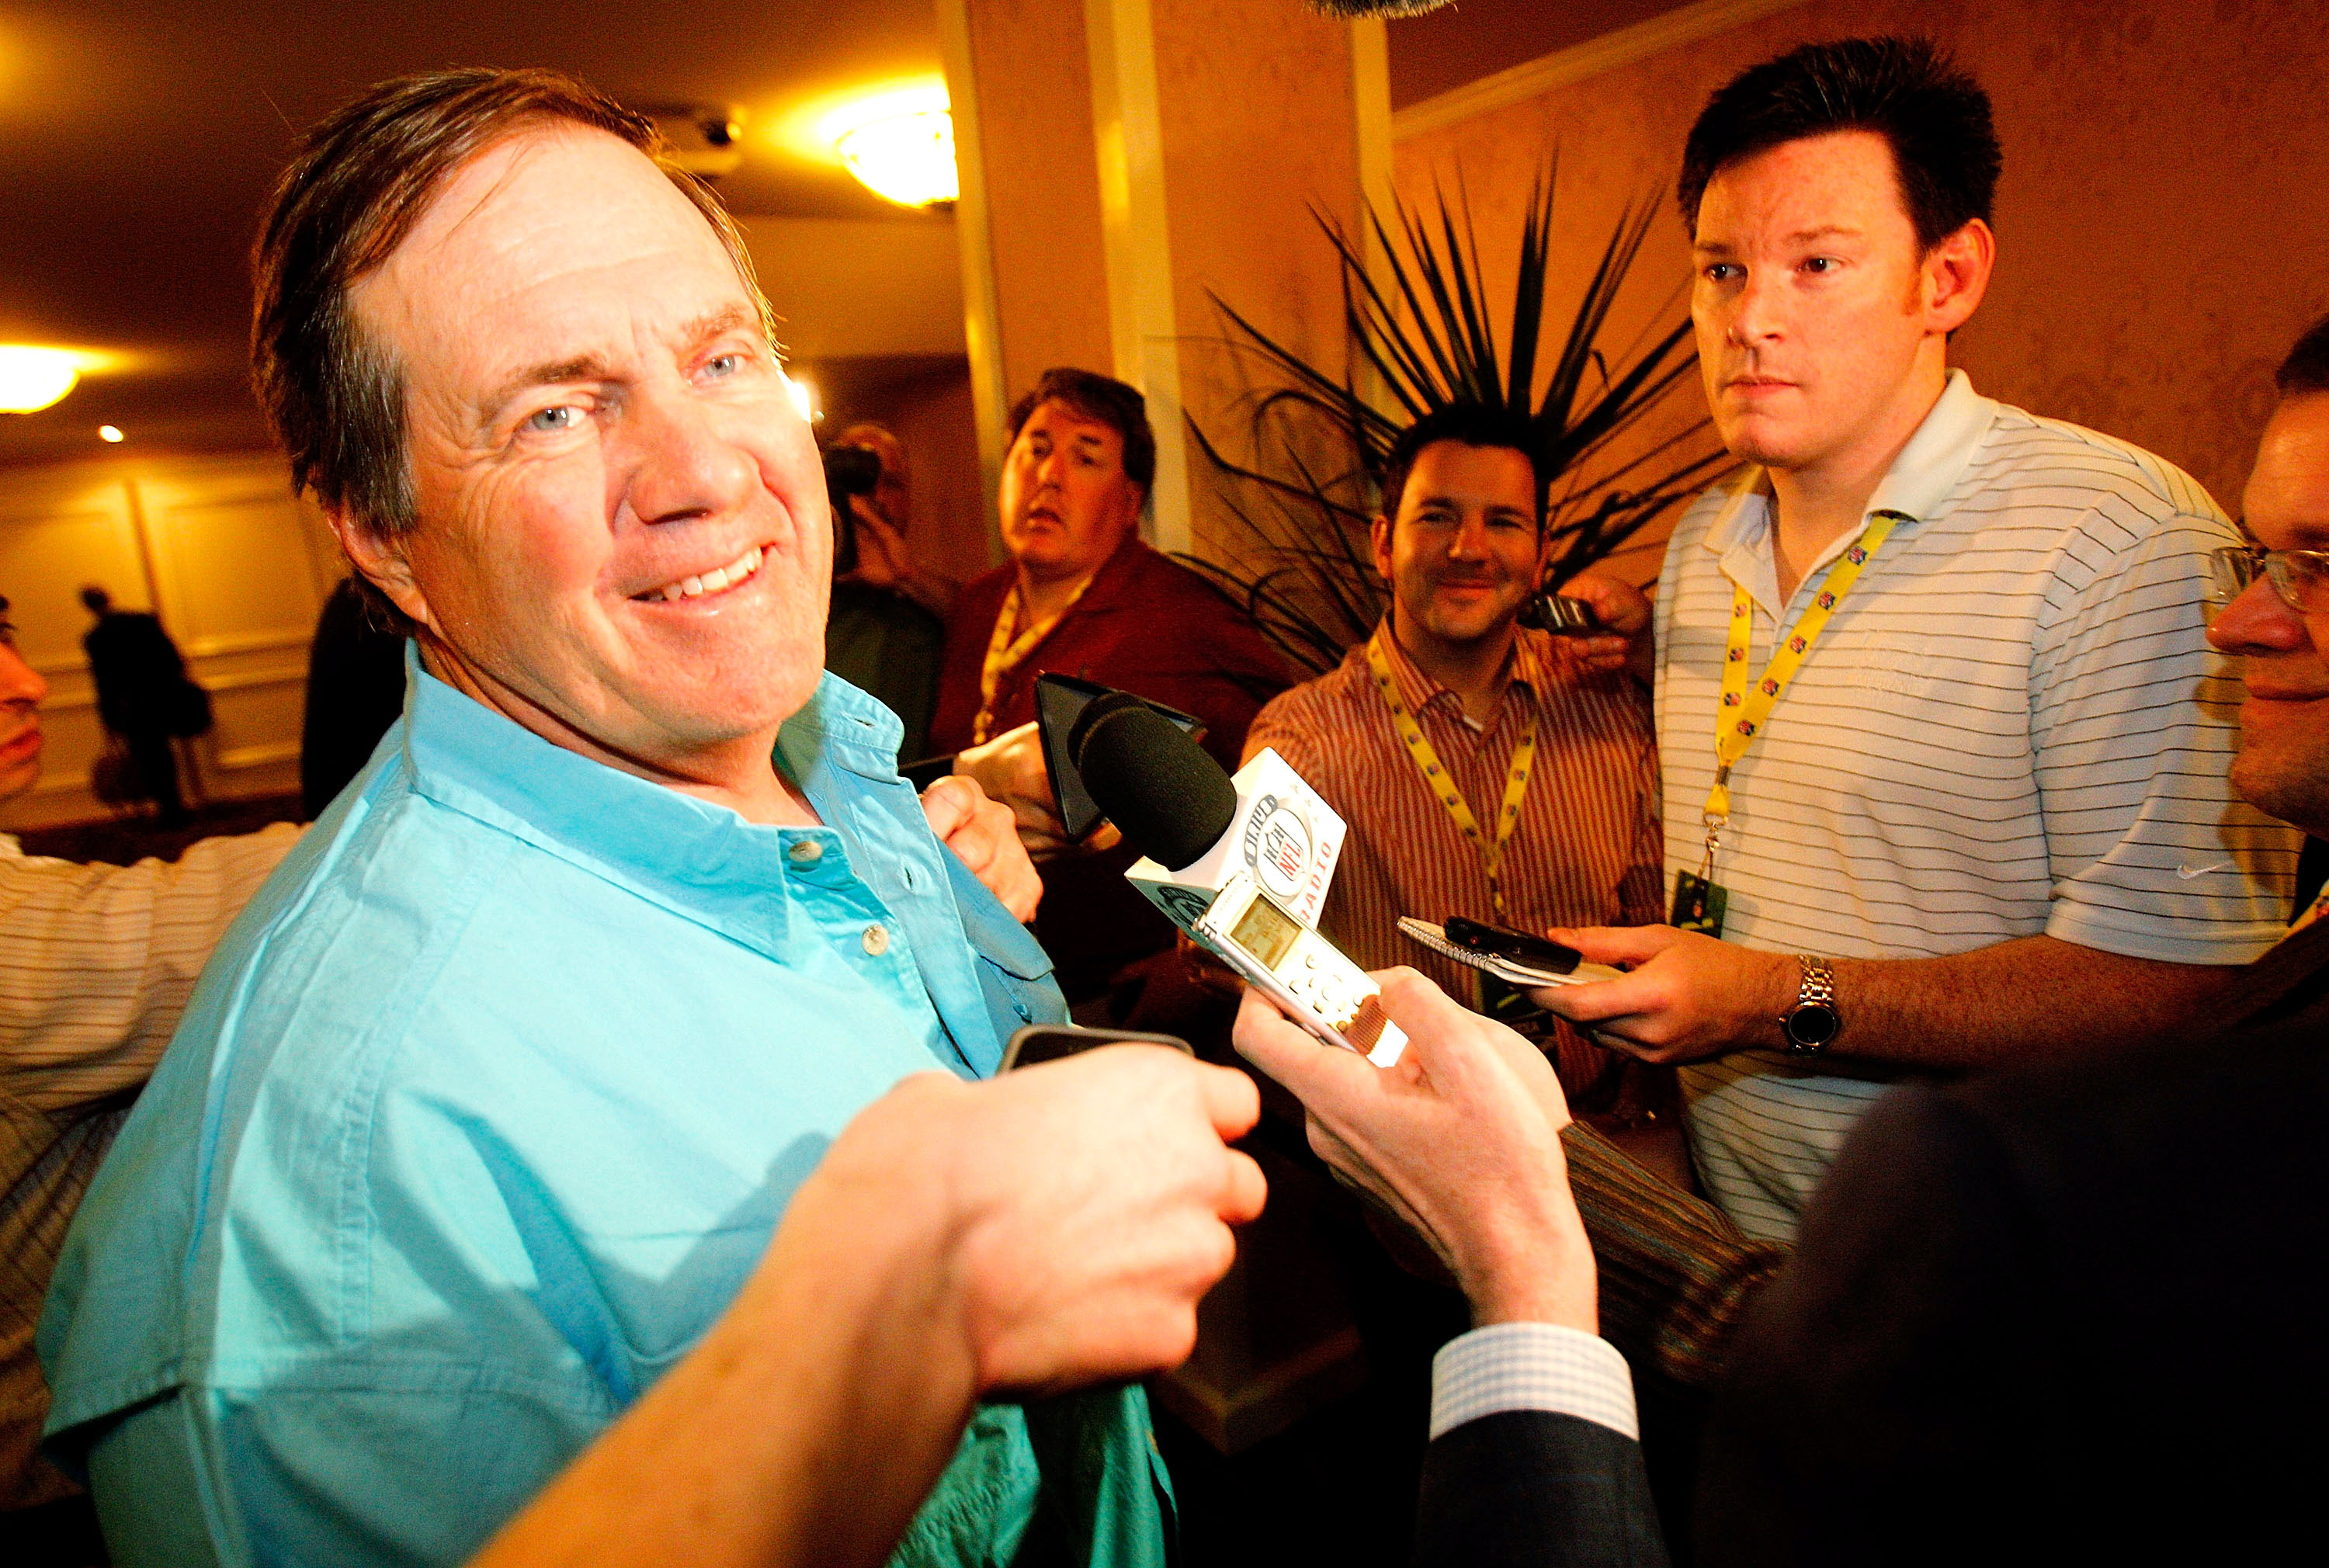 NEW ORLEANS, LA - MARCH 21: New England Patriot head coach Bill Belichick jokes with the media after missing breakfast during the NFL Annual Meetings at the Roosevelt Hotel on March 21, 2011 in New Orleans, Louisiana. Despite a NFL owners imposed lockout